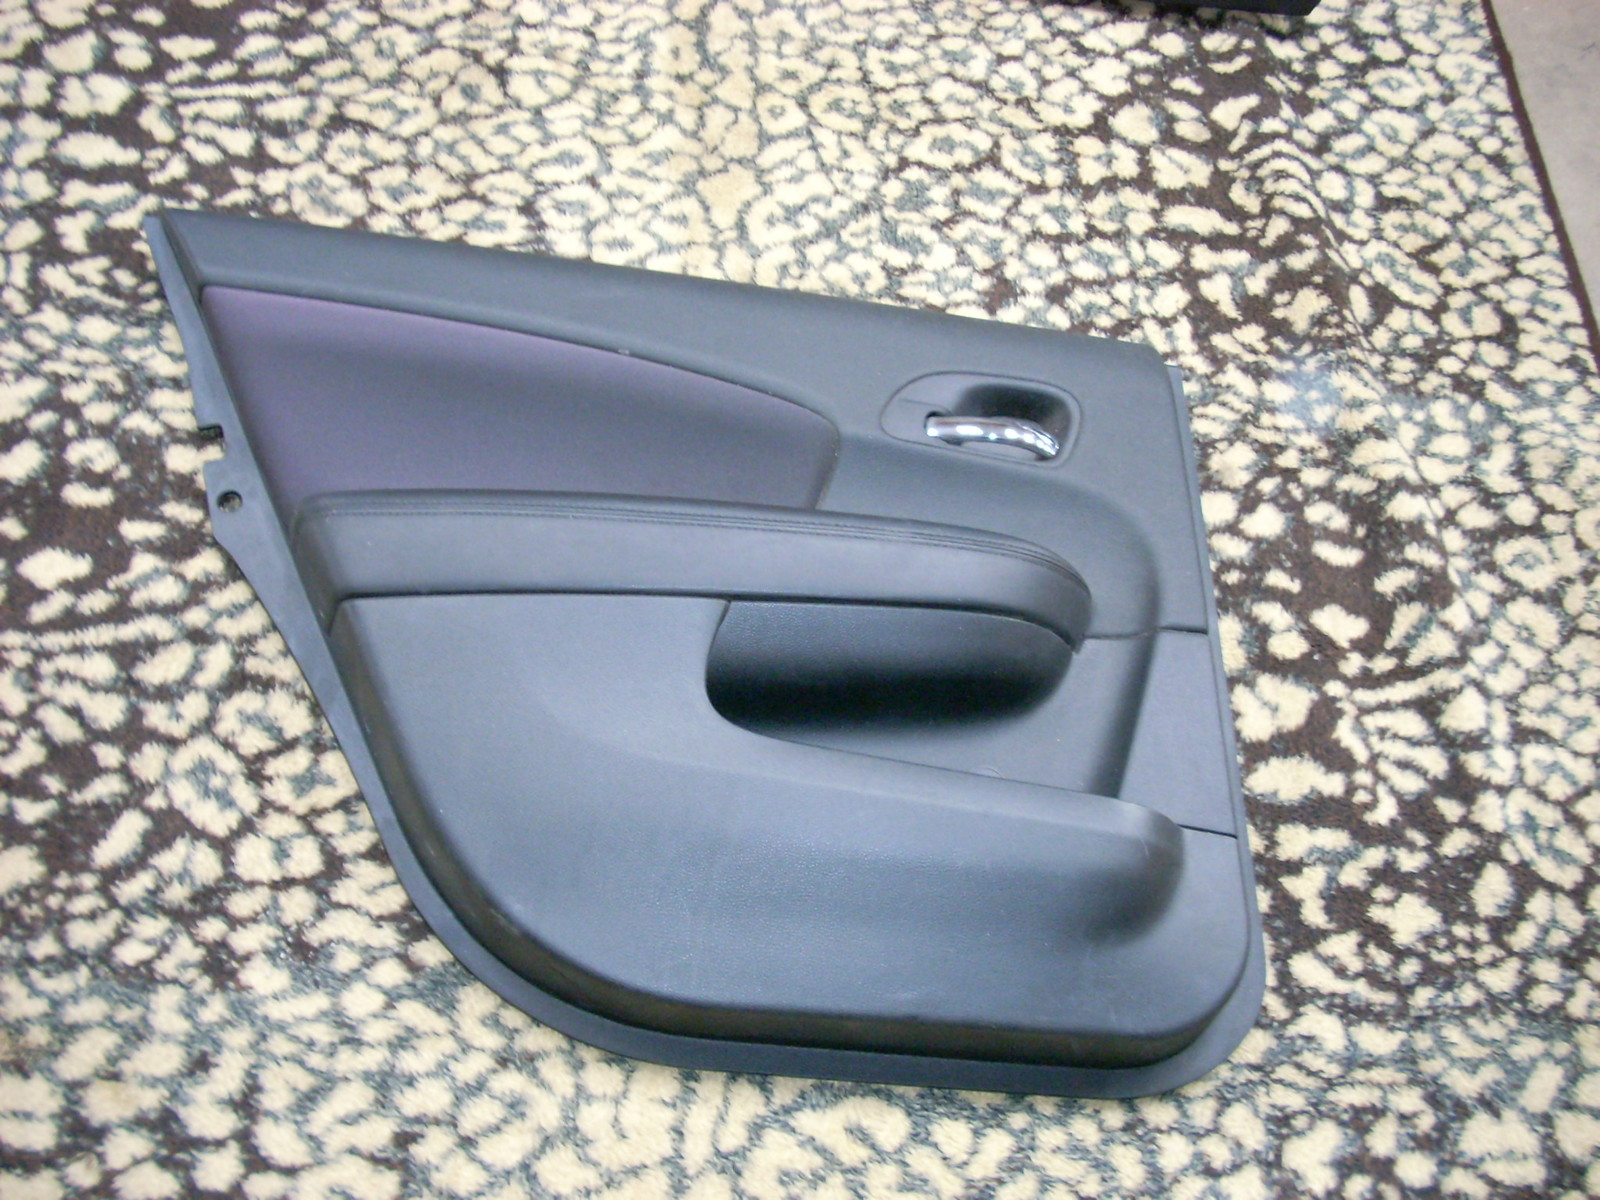 2013 CHRYSLER 200 LEFT REAR TRIM PANEL